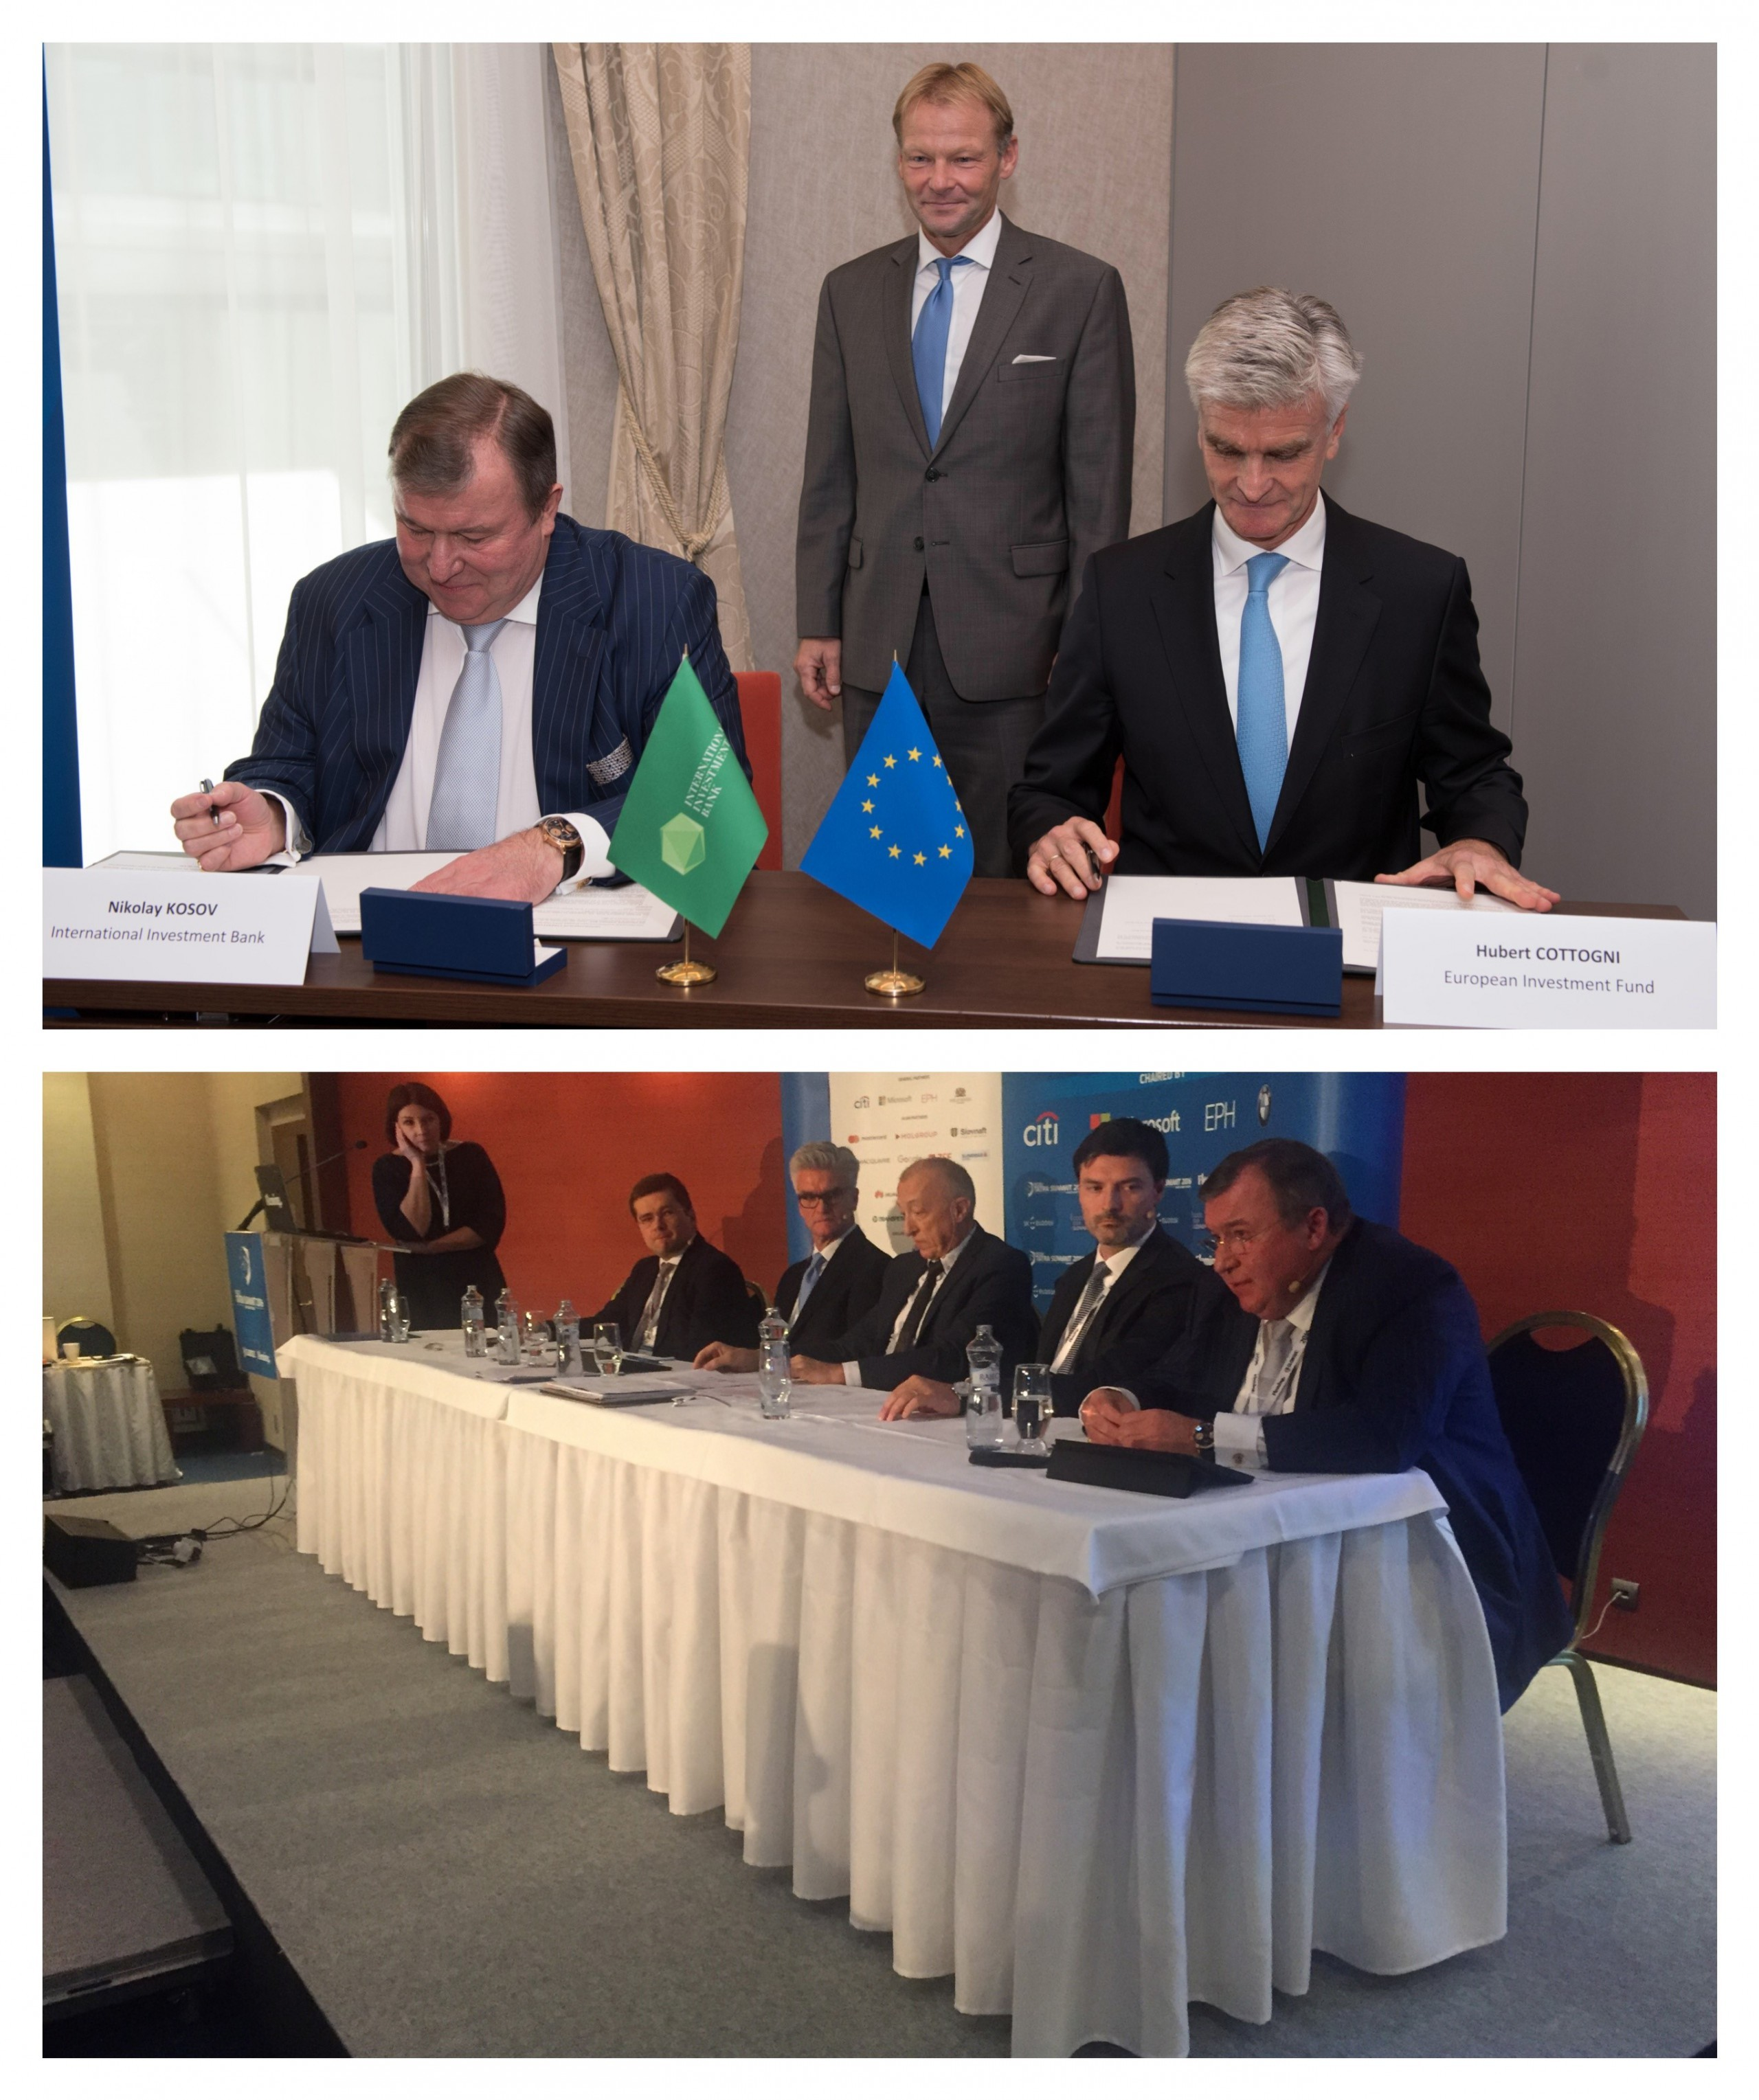 At TATRA SUMMIT, IIB Chairman presented vision of IFI support for CEE economies and signed MoU with EIF